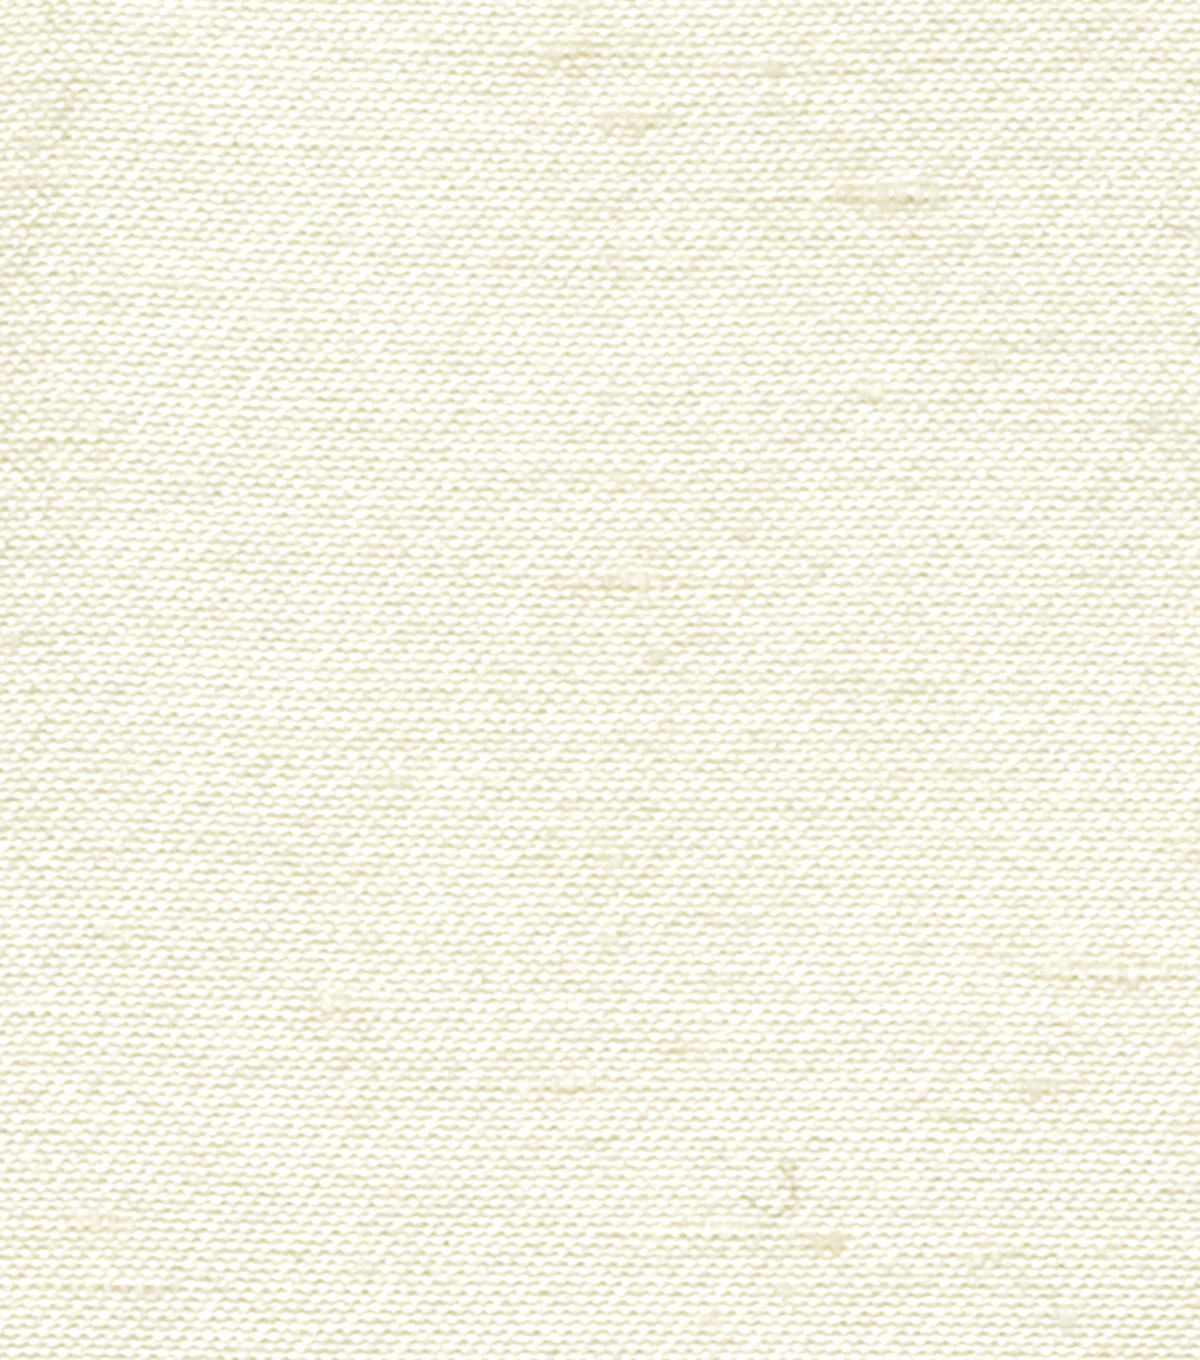 Eaton Square Solid Fabric 54\u0022-Antique Satin /Diamond